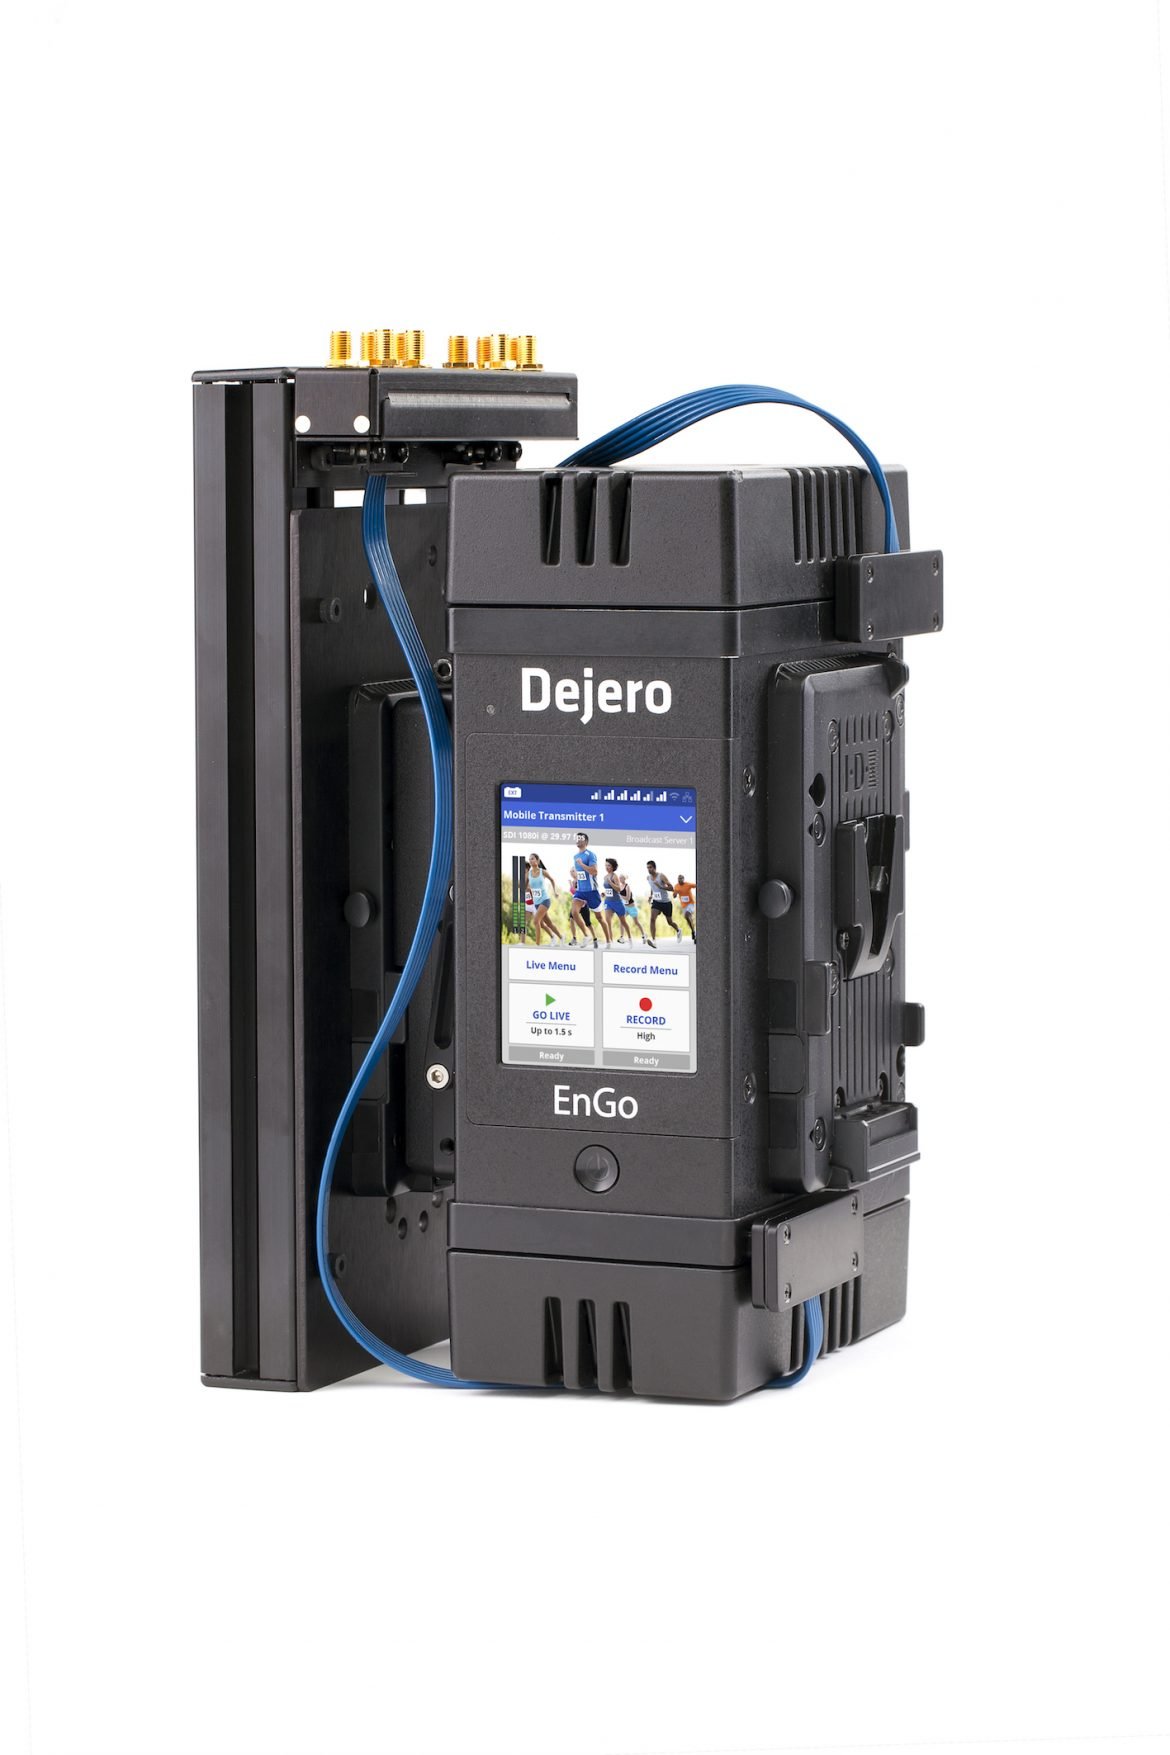 Dejero Further Extends Workflows to the Field with Blended